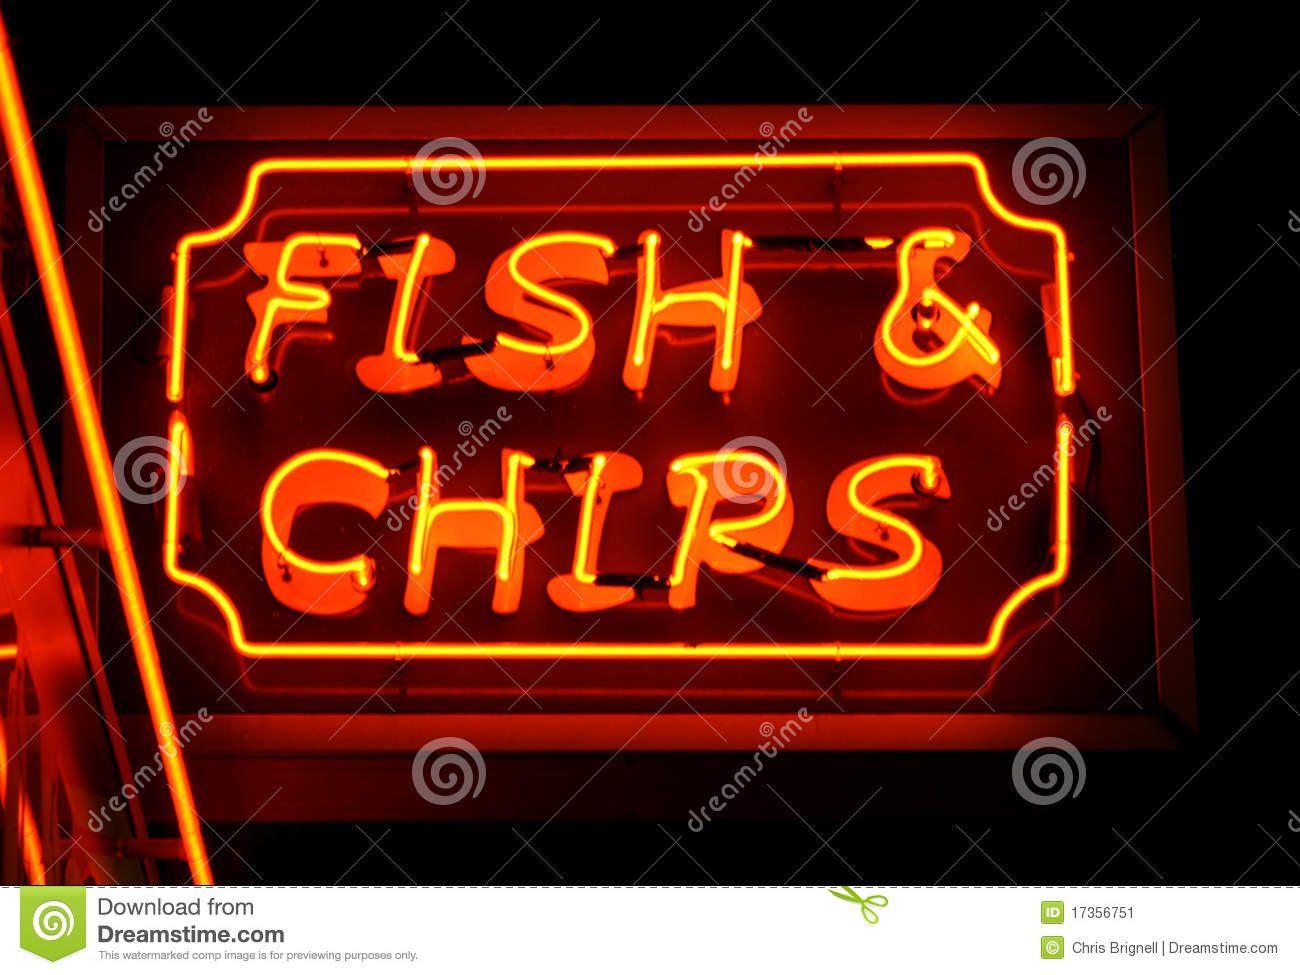 Fish and chips neon sign stock image image 17356751 for Fish neon sign